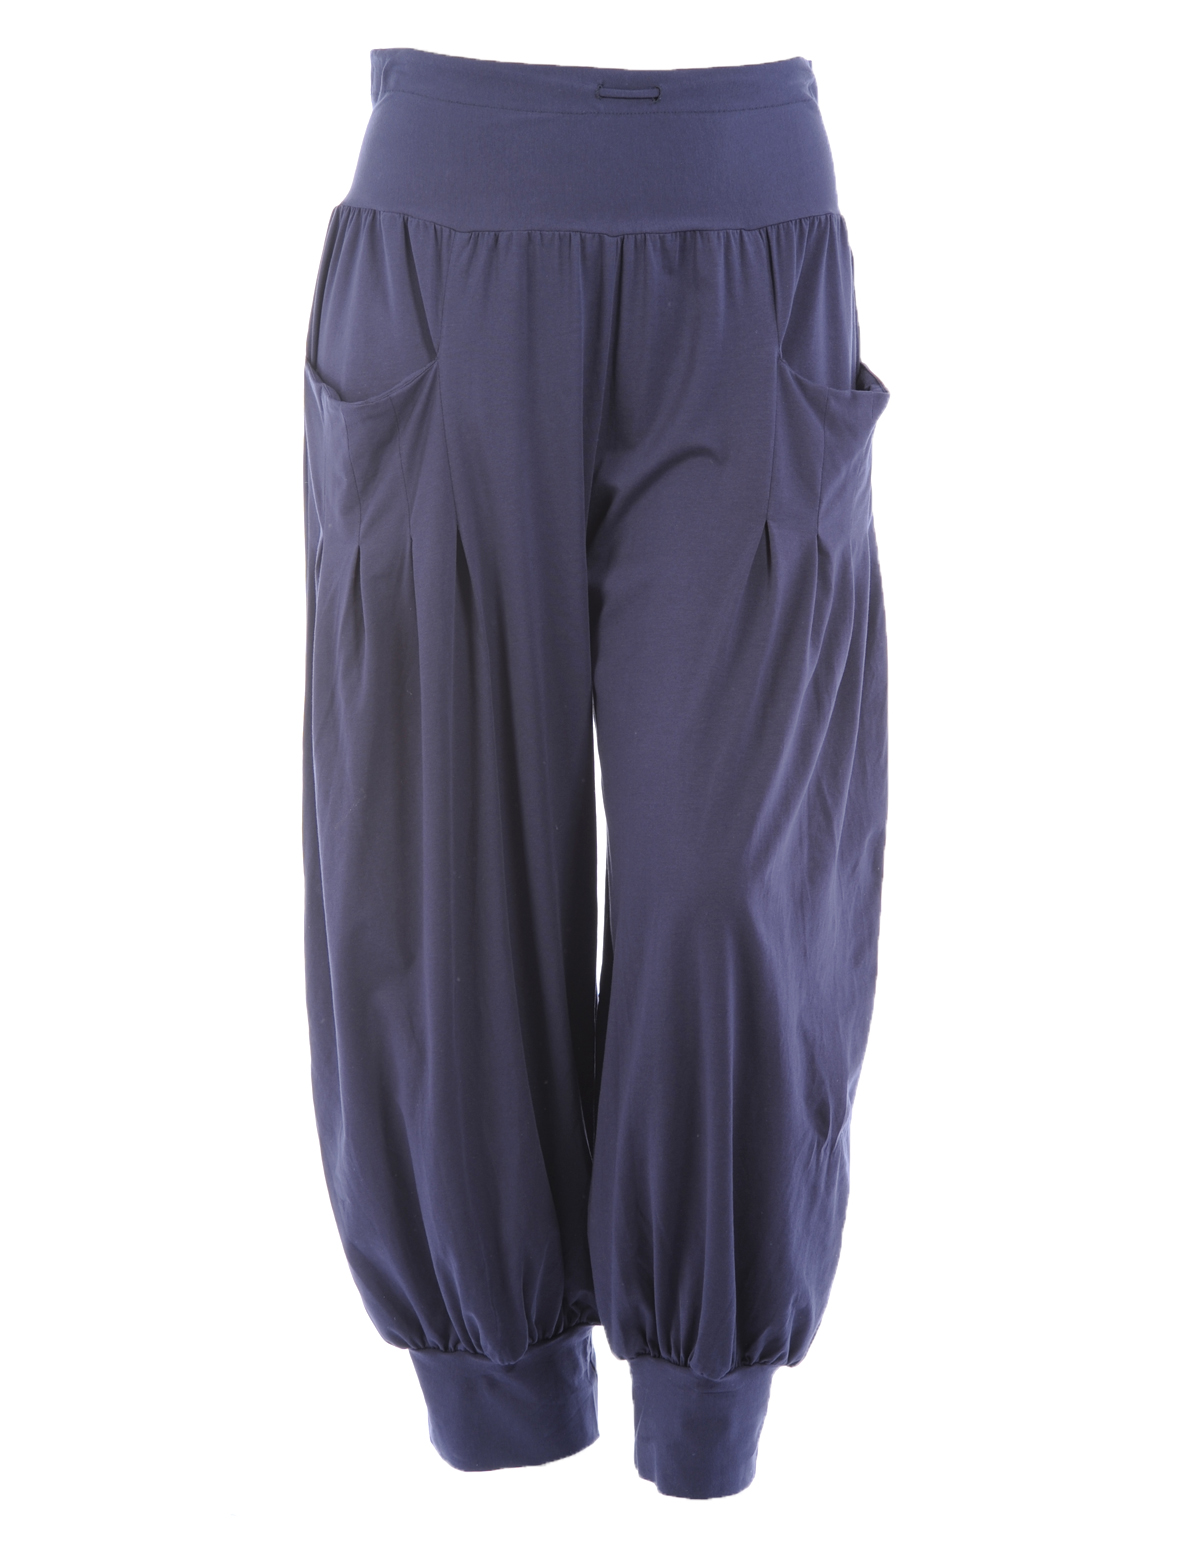 Find balloon pants at ShopStyle. Shop the latest collection of balloon pants from the most popular stores - all in one place.